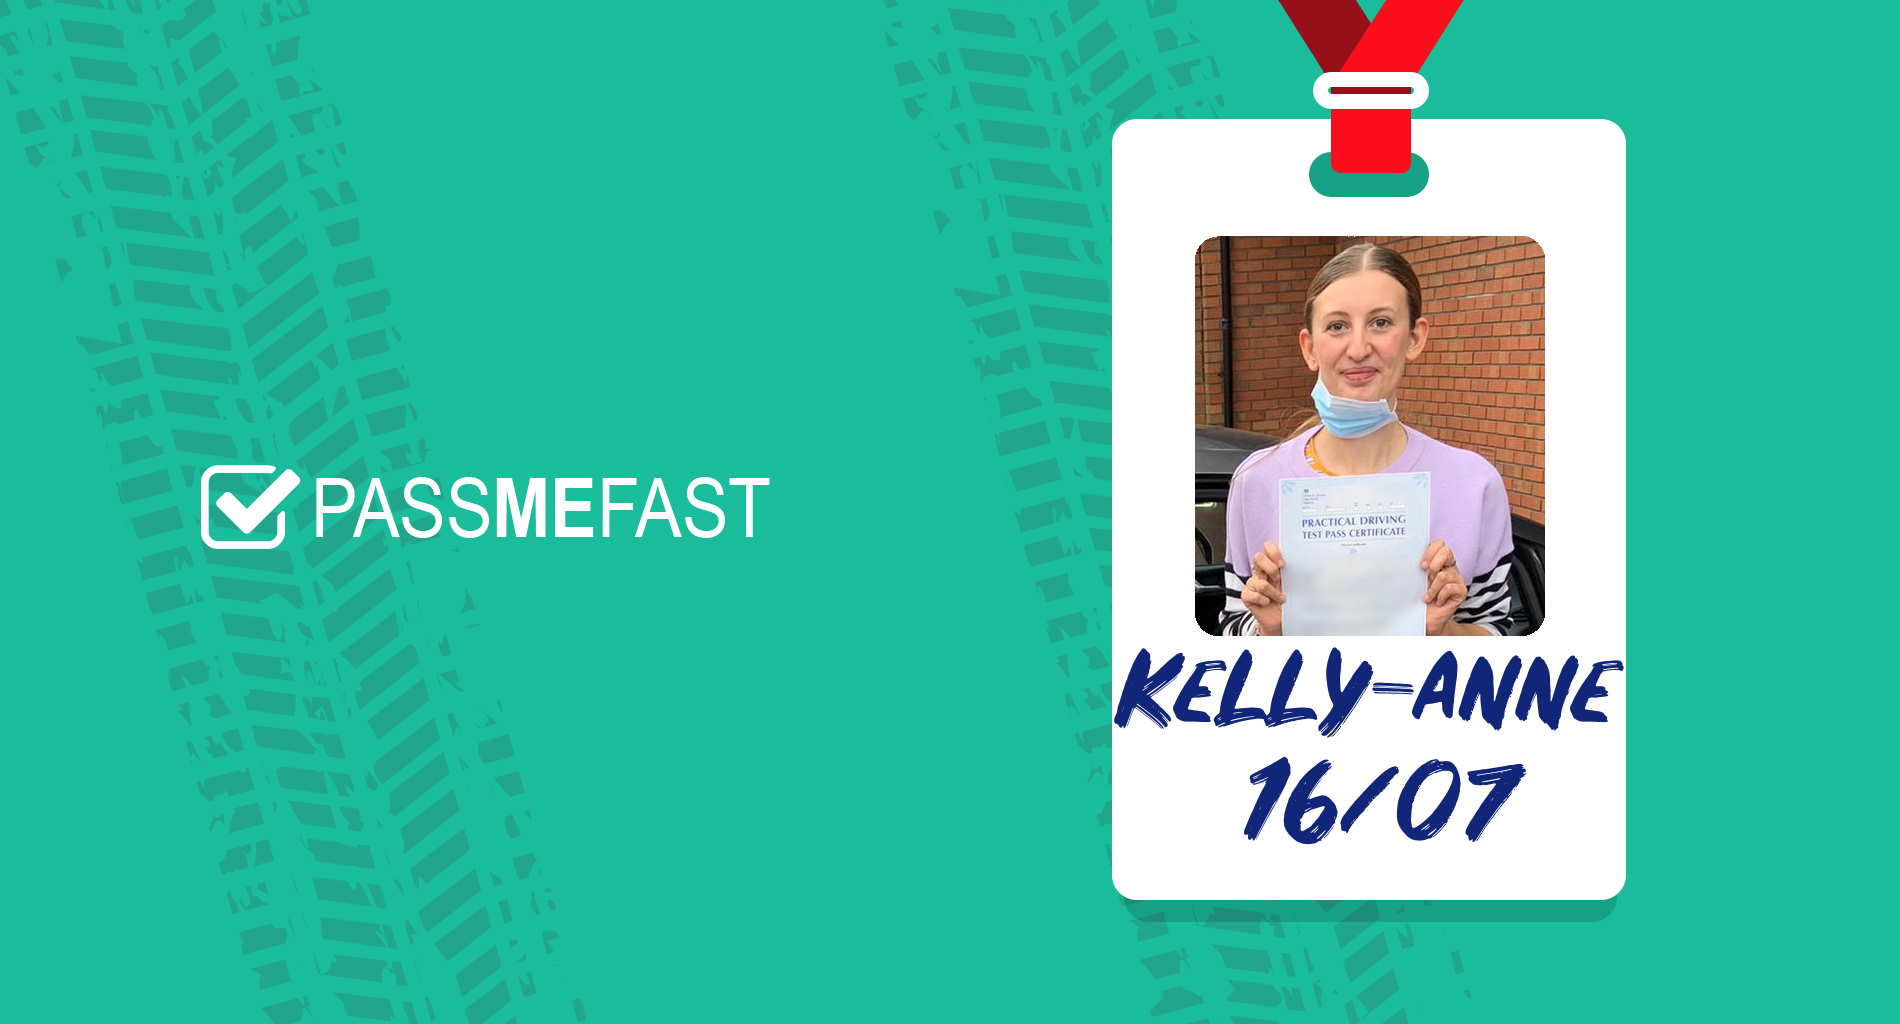 Pass photo of PassMeFast student Kelly-anne in hall of fame frame